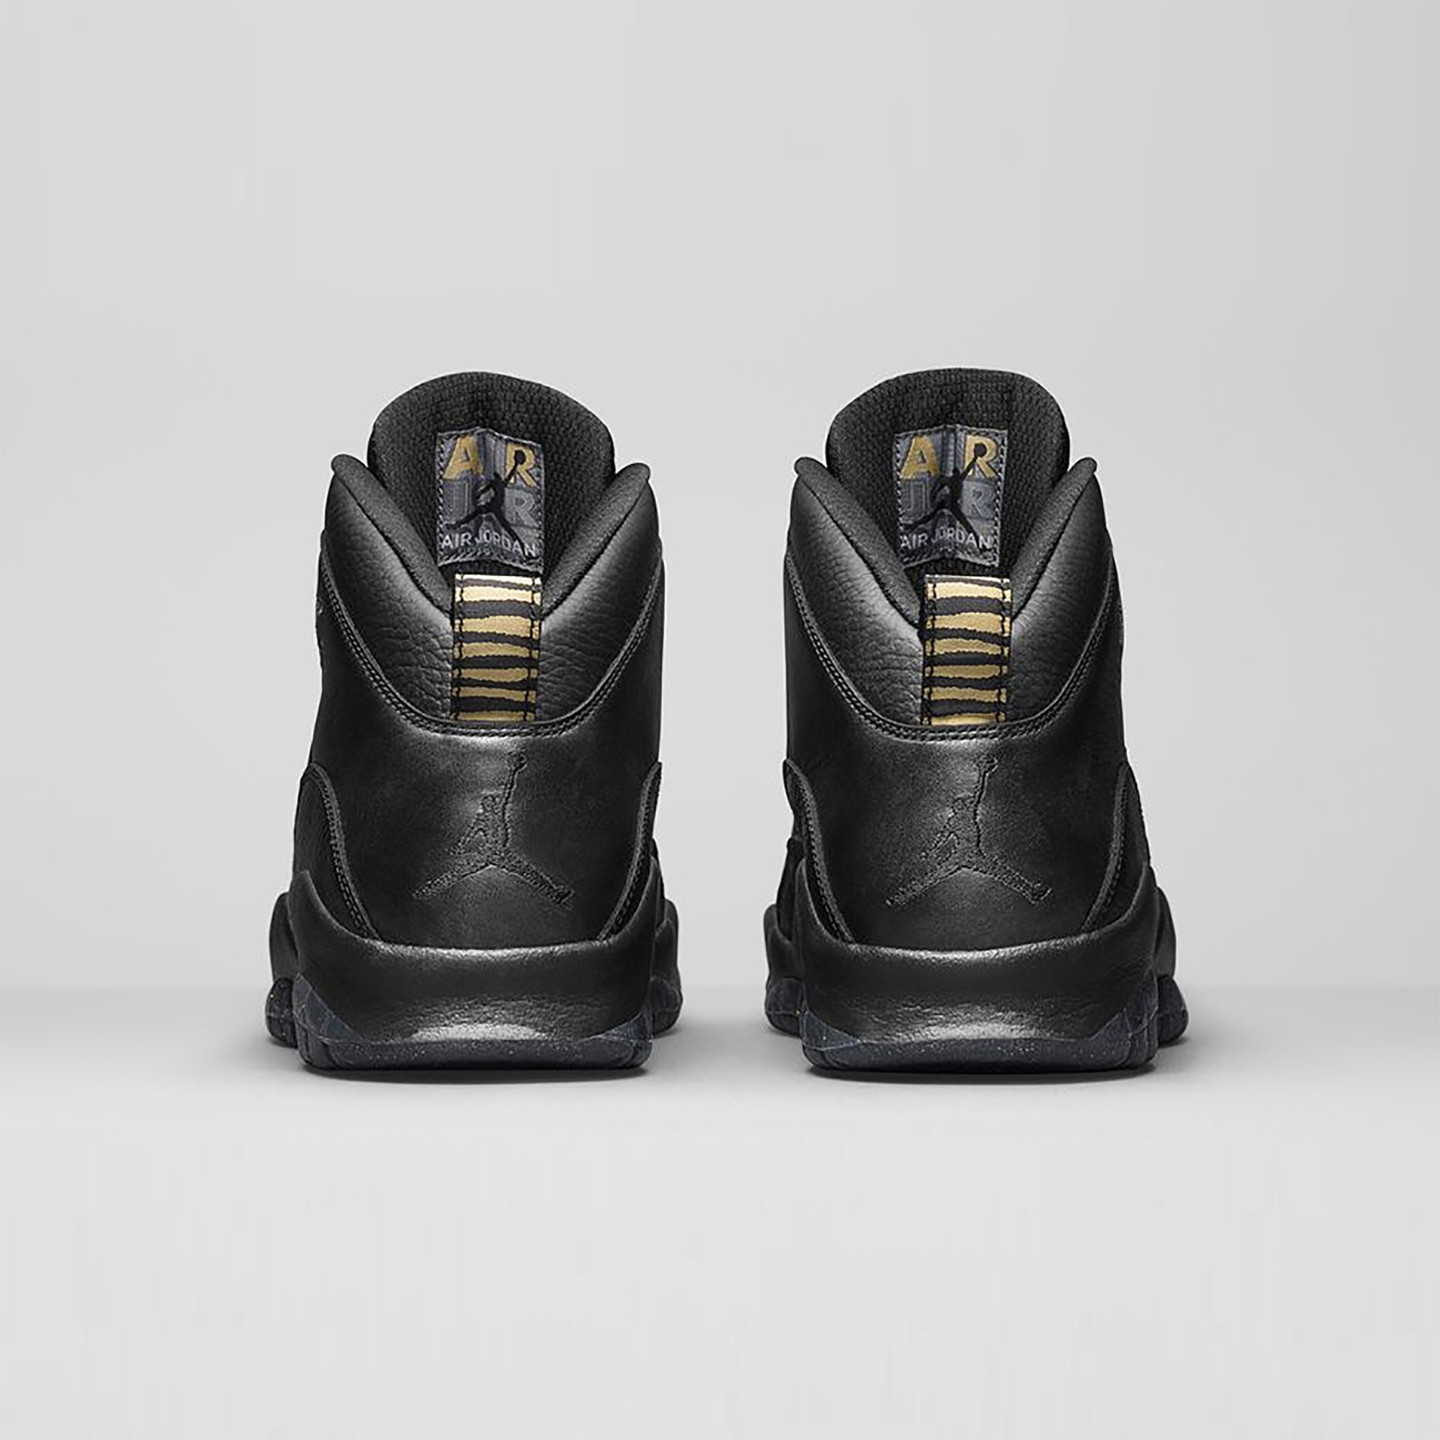 Jordan Air Jordan 10 Retro 'NYC' Black / Metallic Gold 310805-012-44